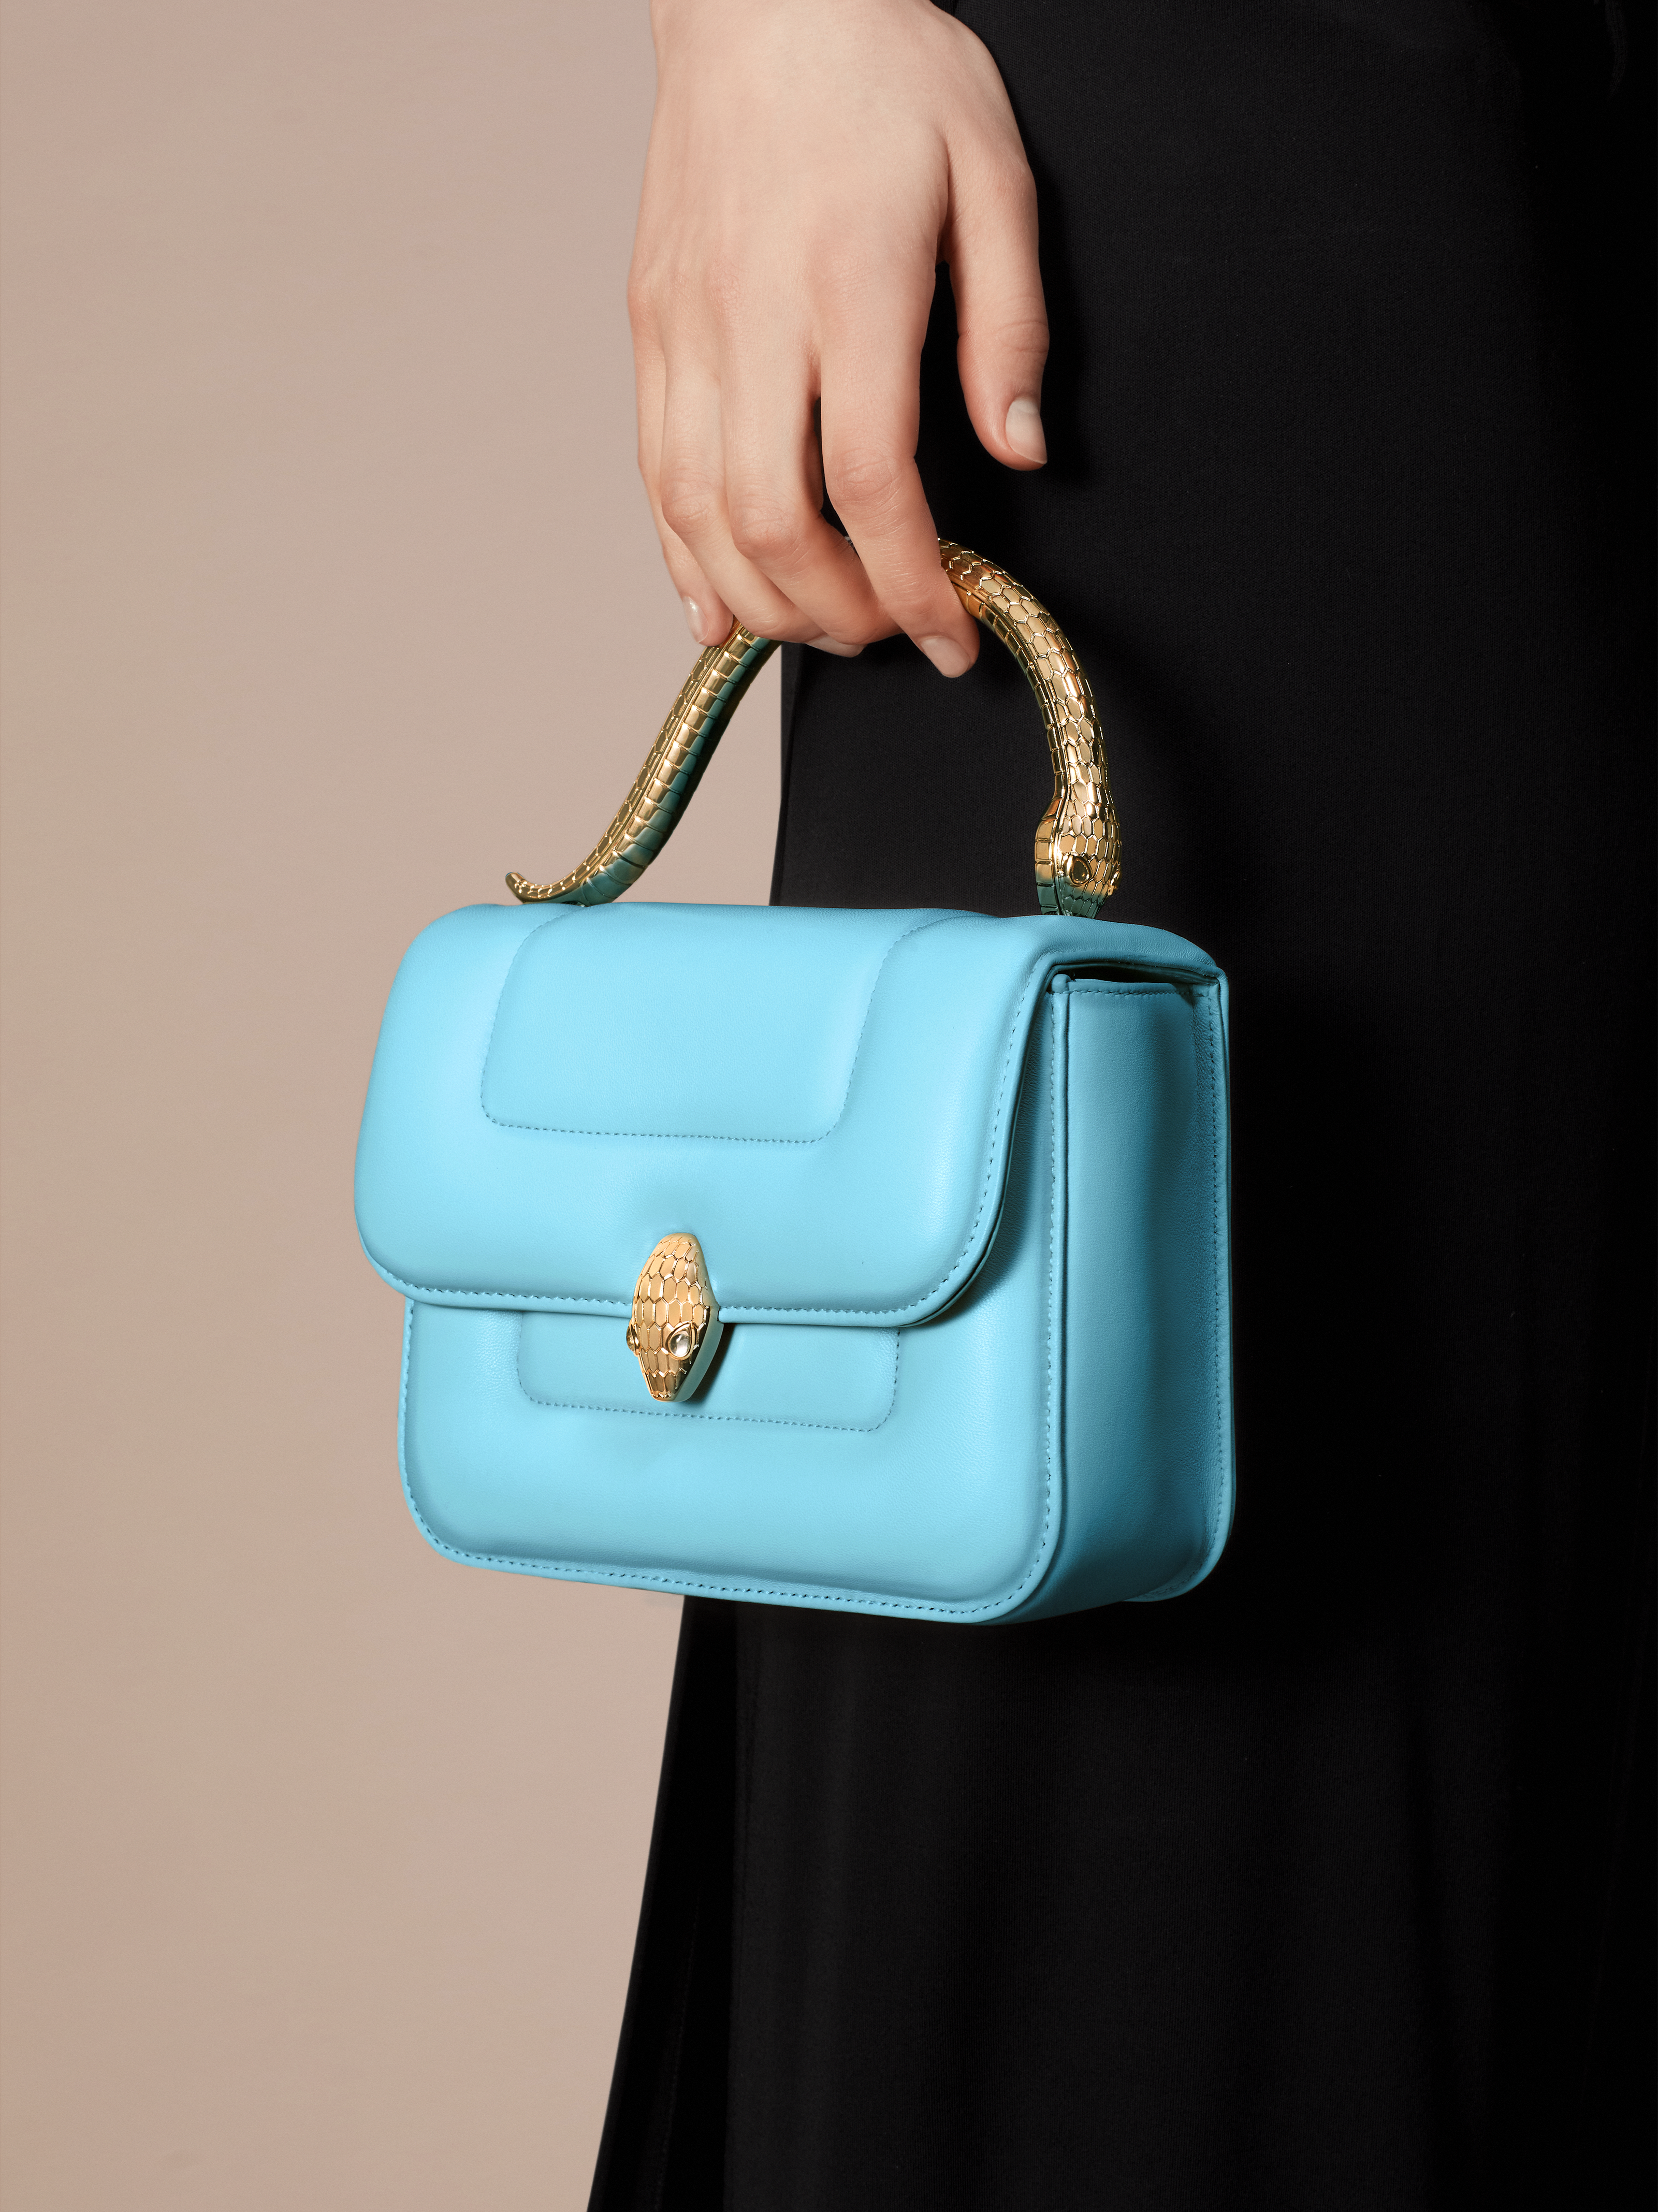 """""""Mary Katrantzou x Bvlgari"""" top handle bag in soft matelassé Aegean Topaz blue nappa leather, with Aegean Topaz blue nappa leather inner lining. New Serpenti head closure in gold-plated brass, finished with seductive crystal eyes. Special Edition. MK-1142 image 8"""